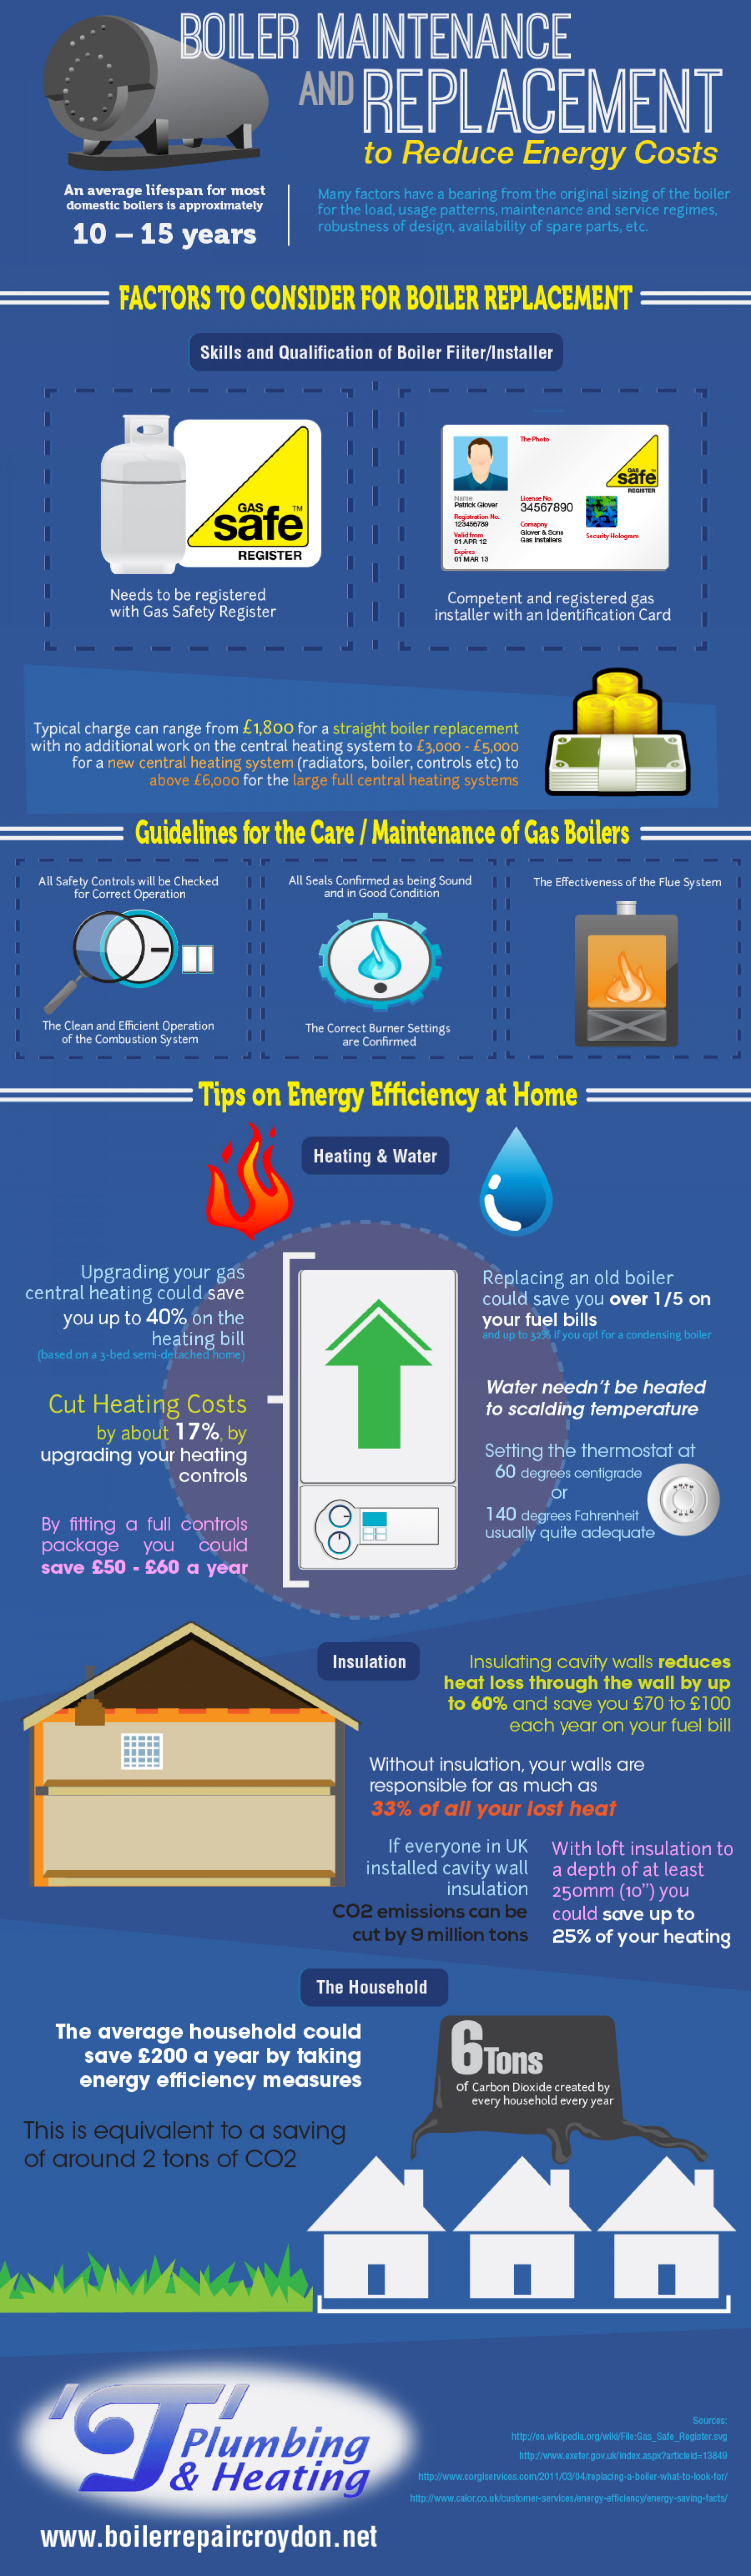 Boiler Maintenance and Replacement to Reduce Energy Costs Infographic